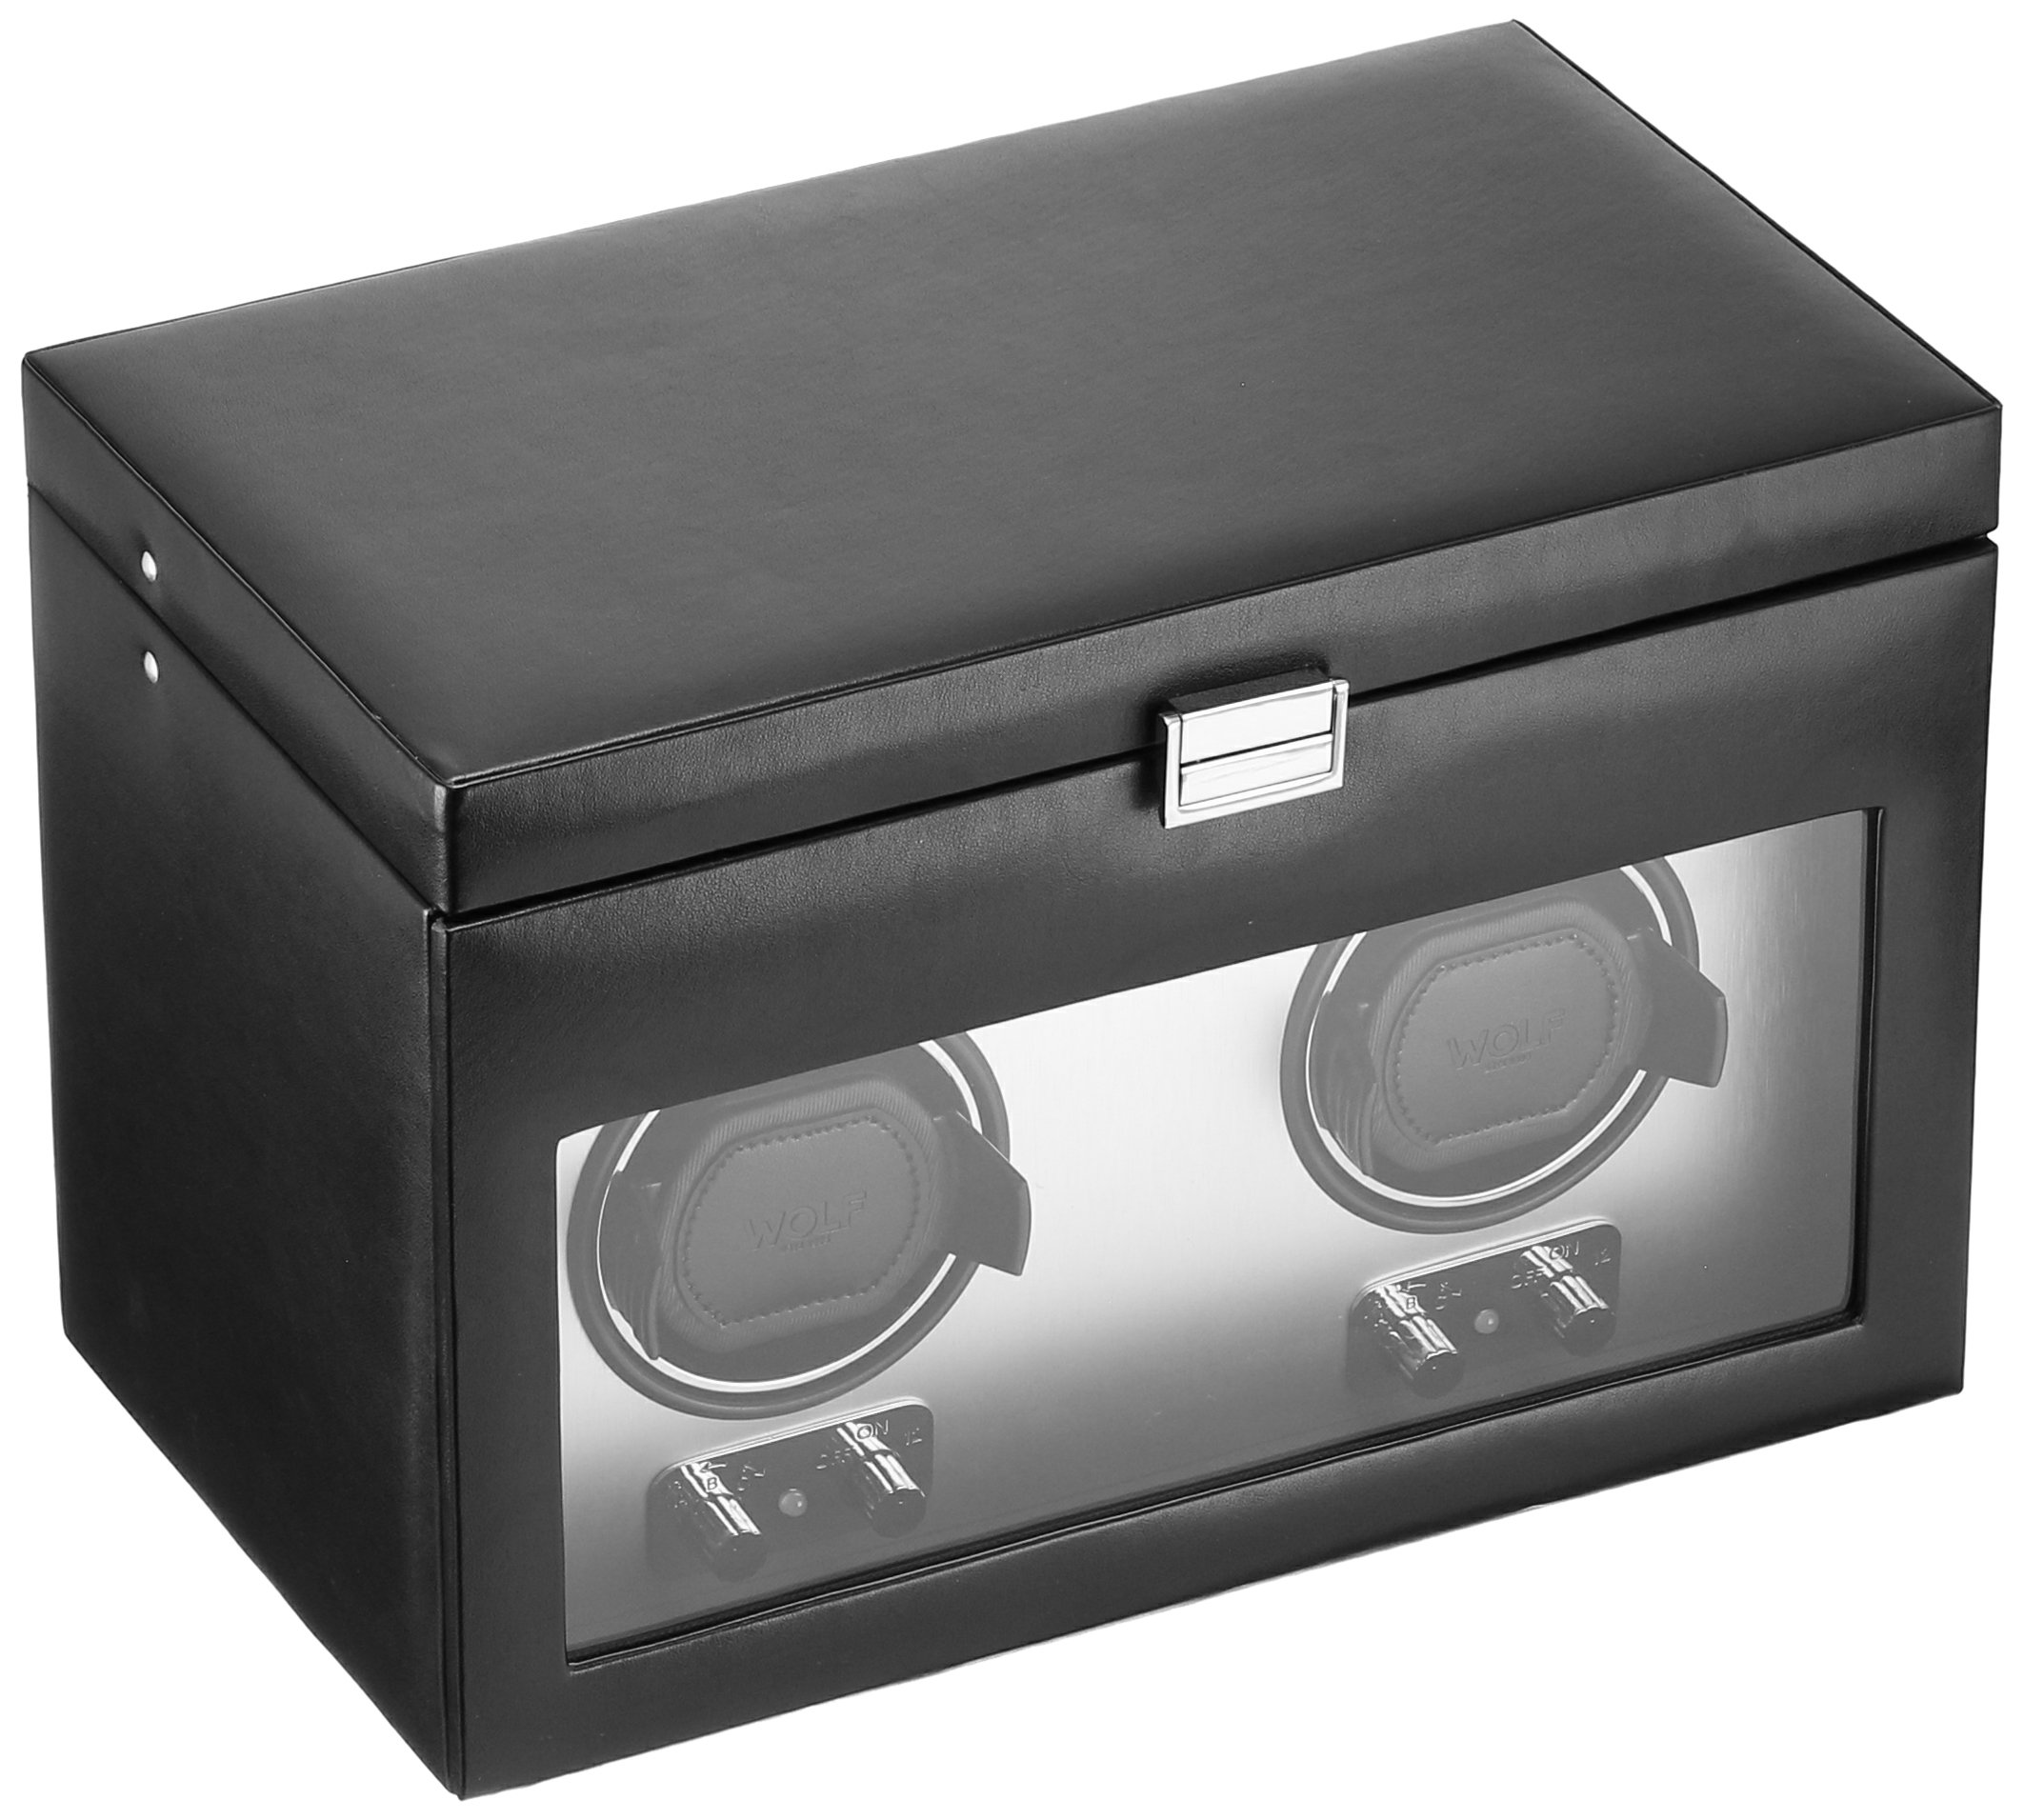 WOLF 270403 Heritage Double Watch Winder with Cover and Storage, Brushed Metal